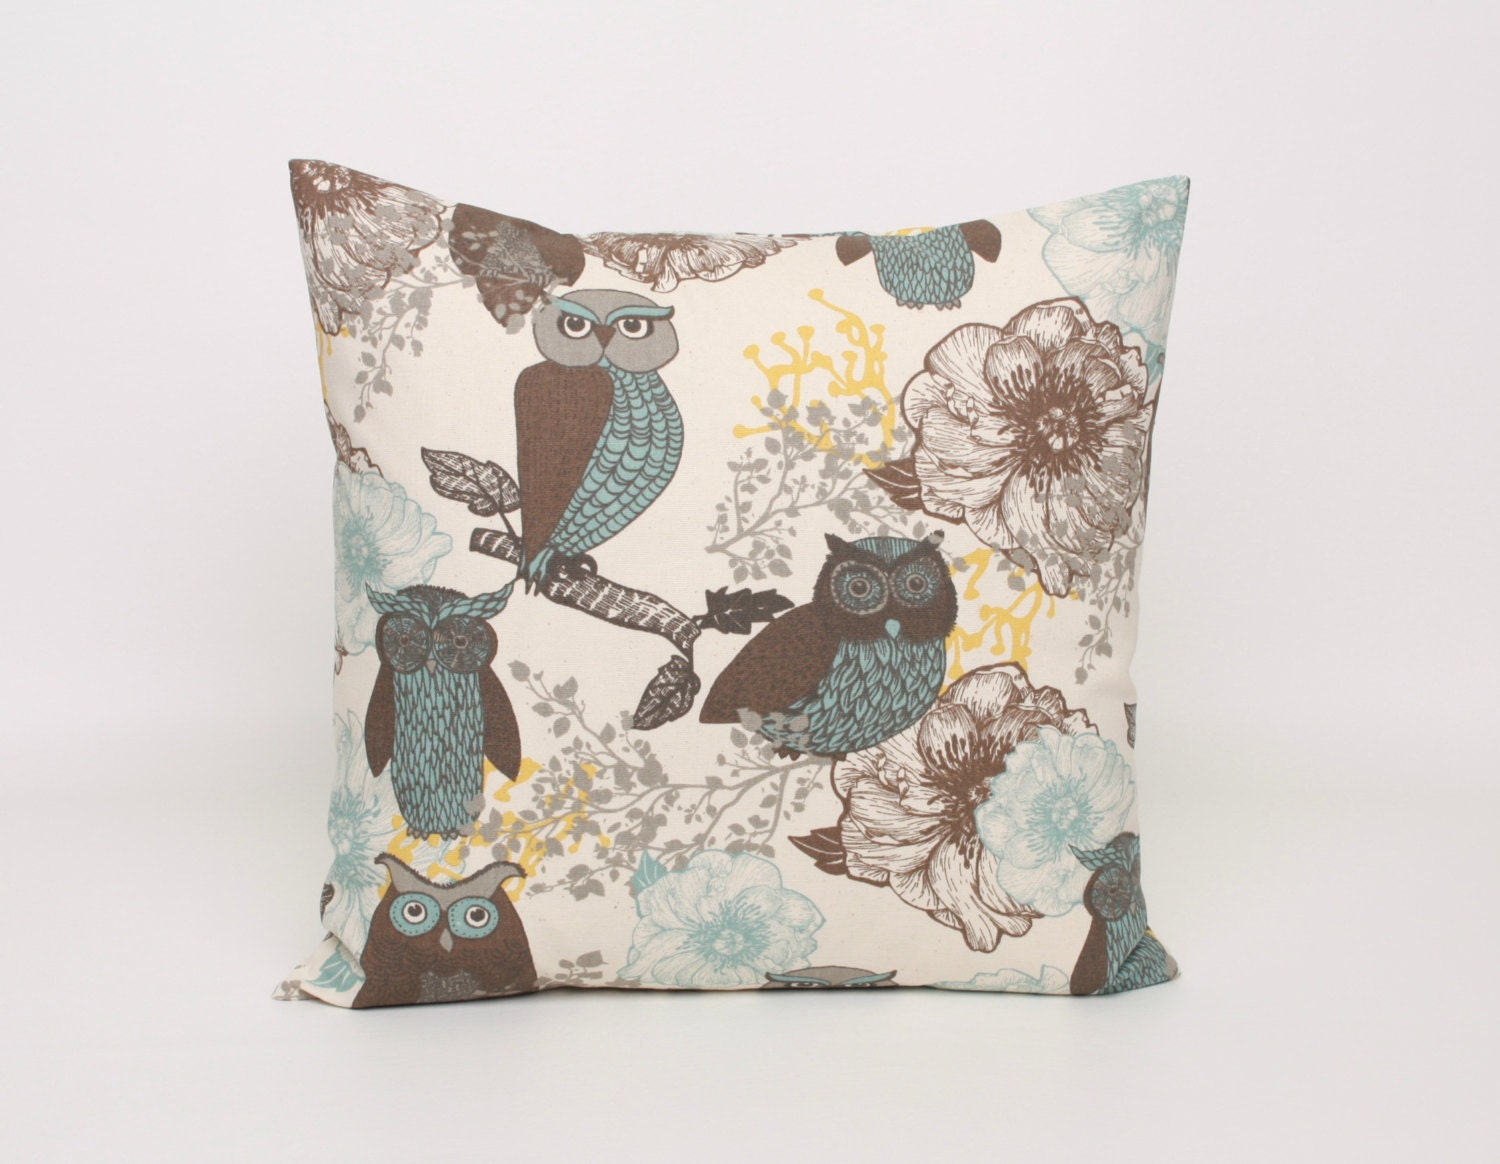 Owl Throw Pillow Etsy : Floral and Owls Pillow Covers Brown Blue by DimensionsHomeDecor